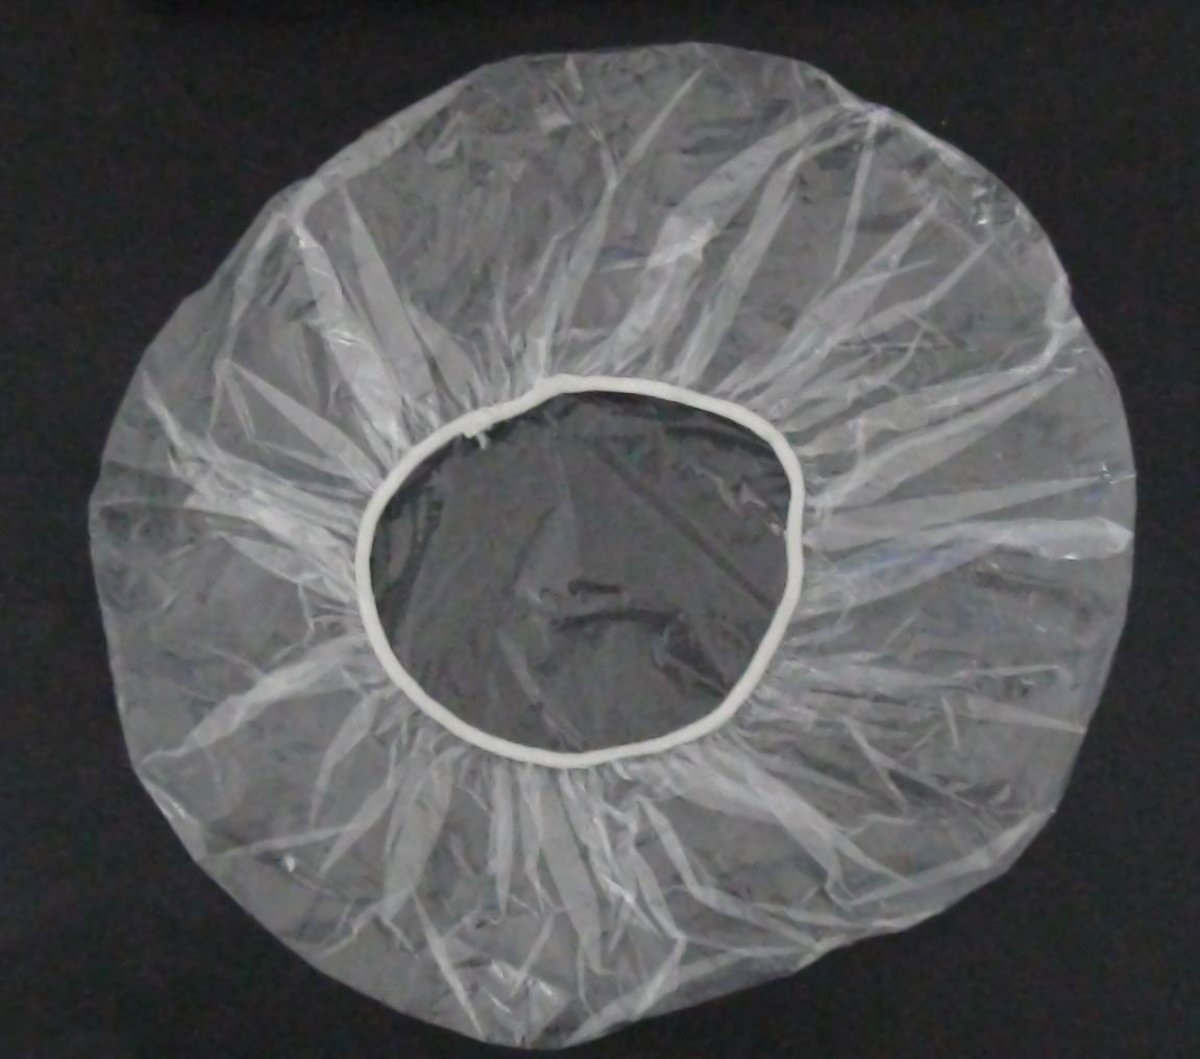 You want the cheap kind of plastic shower cap that you can toss once you are done using it.